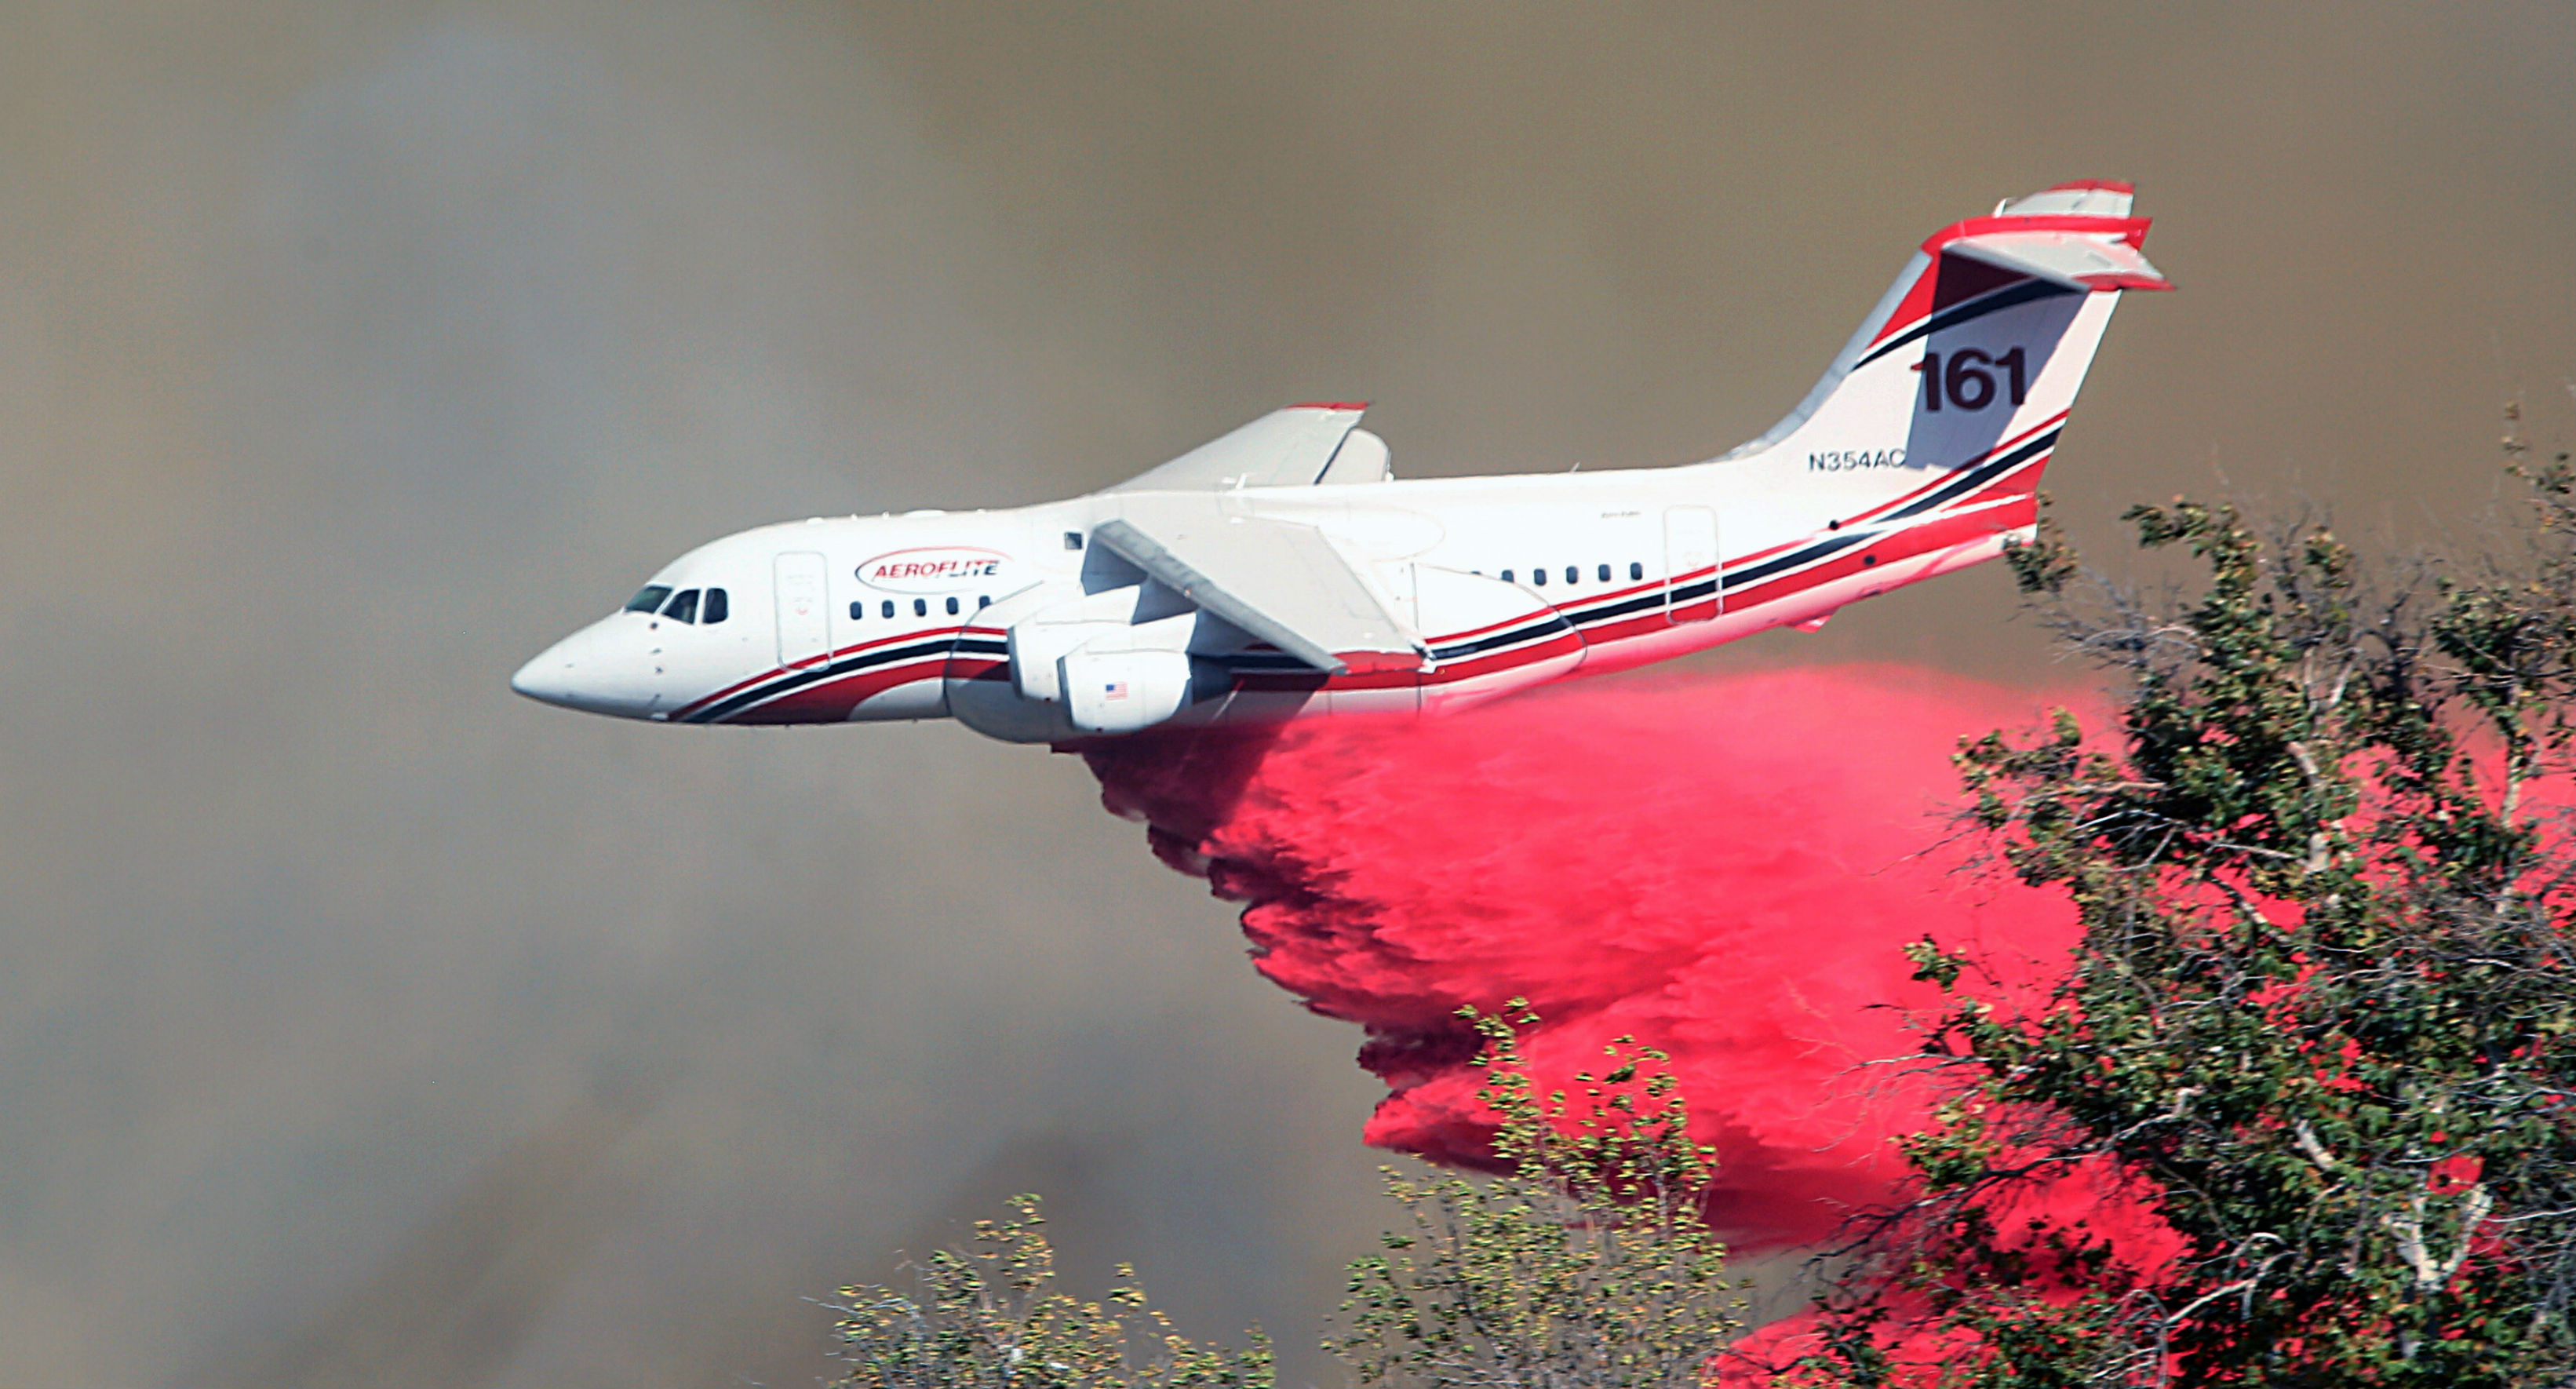 Conair Aerial Firefighting jets have dropped millions of litres of retardant to help combat North American wildfires.